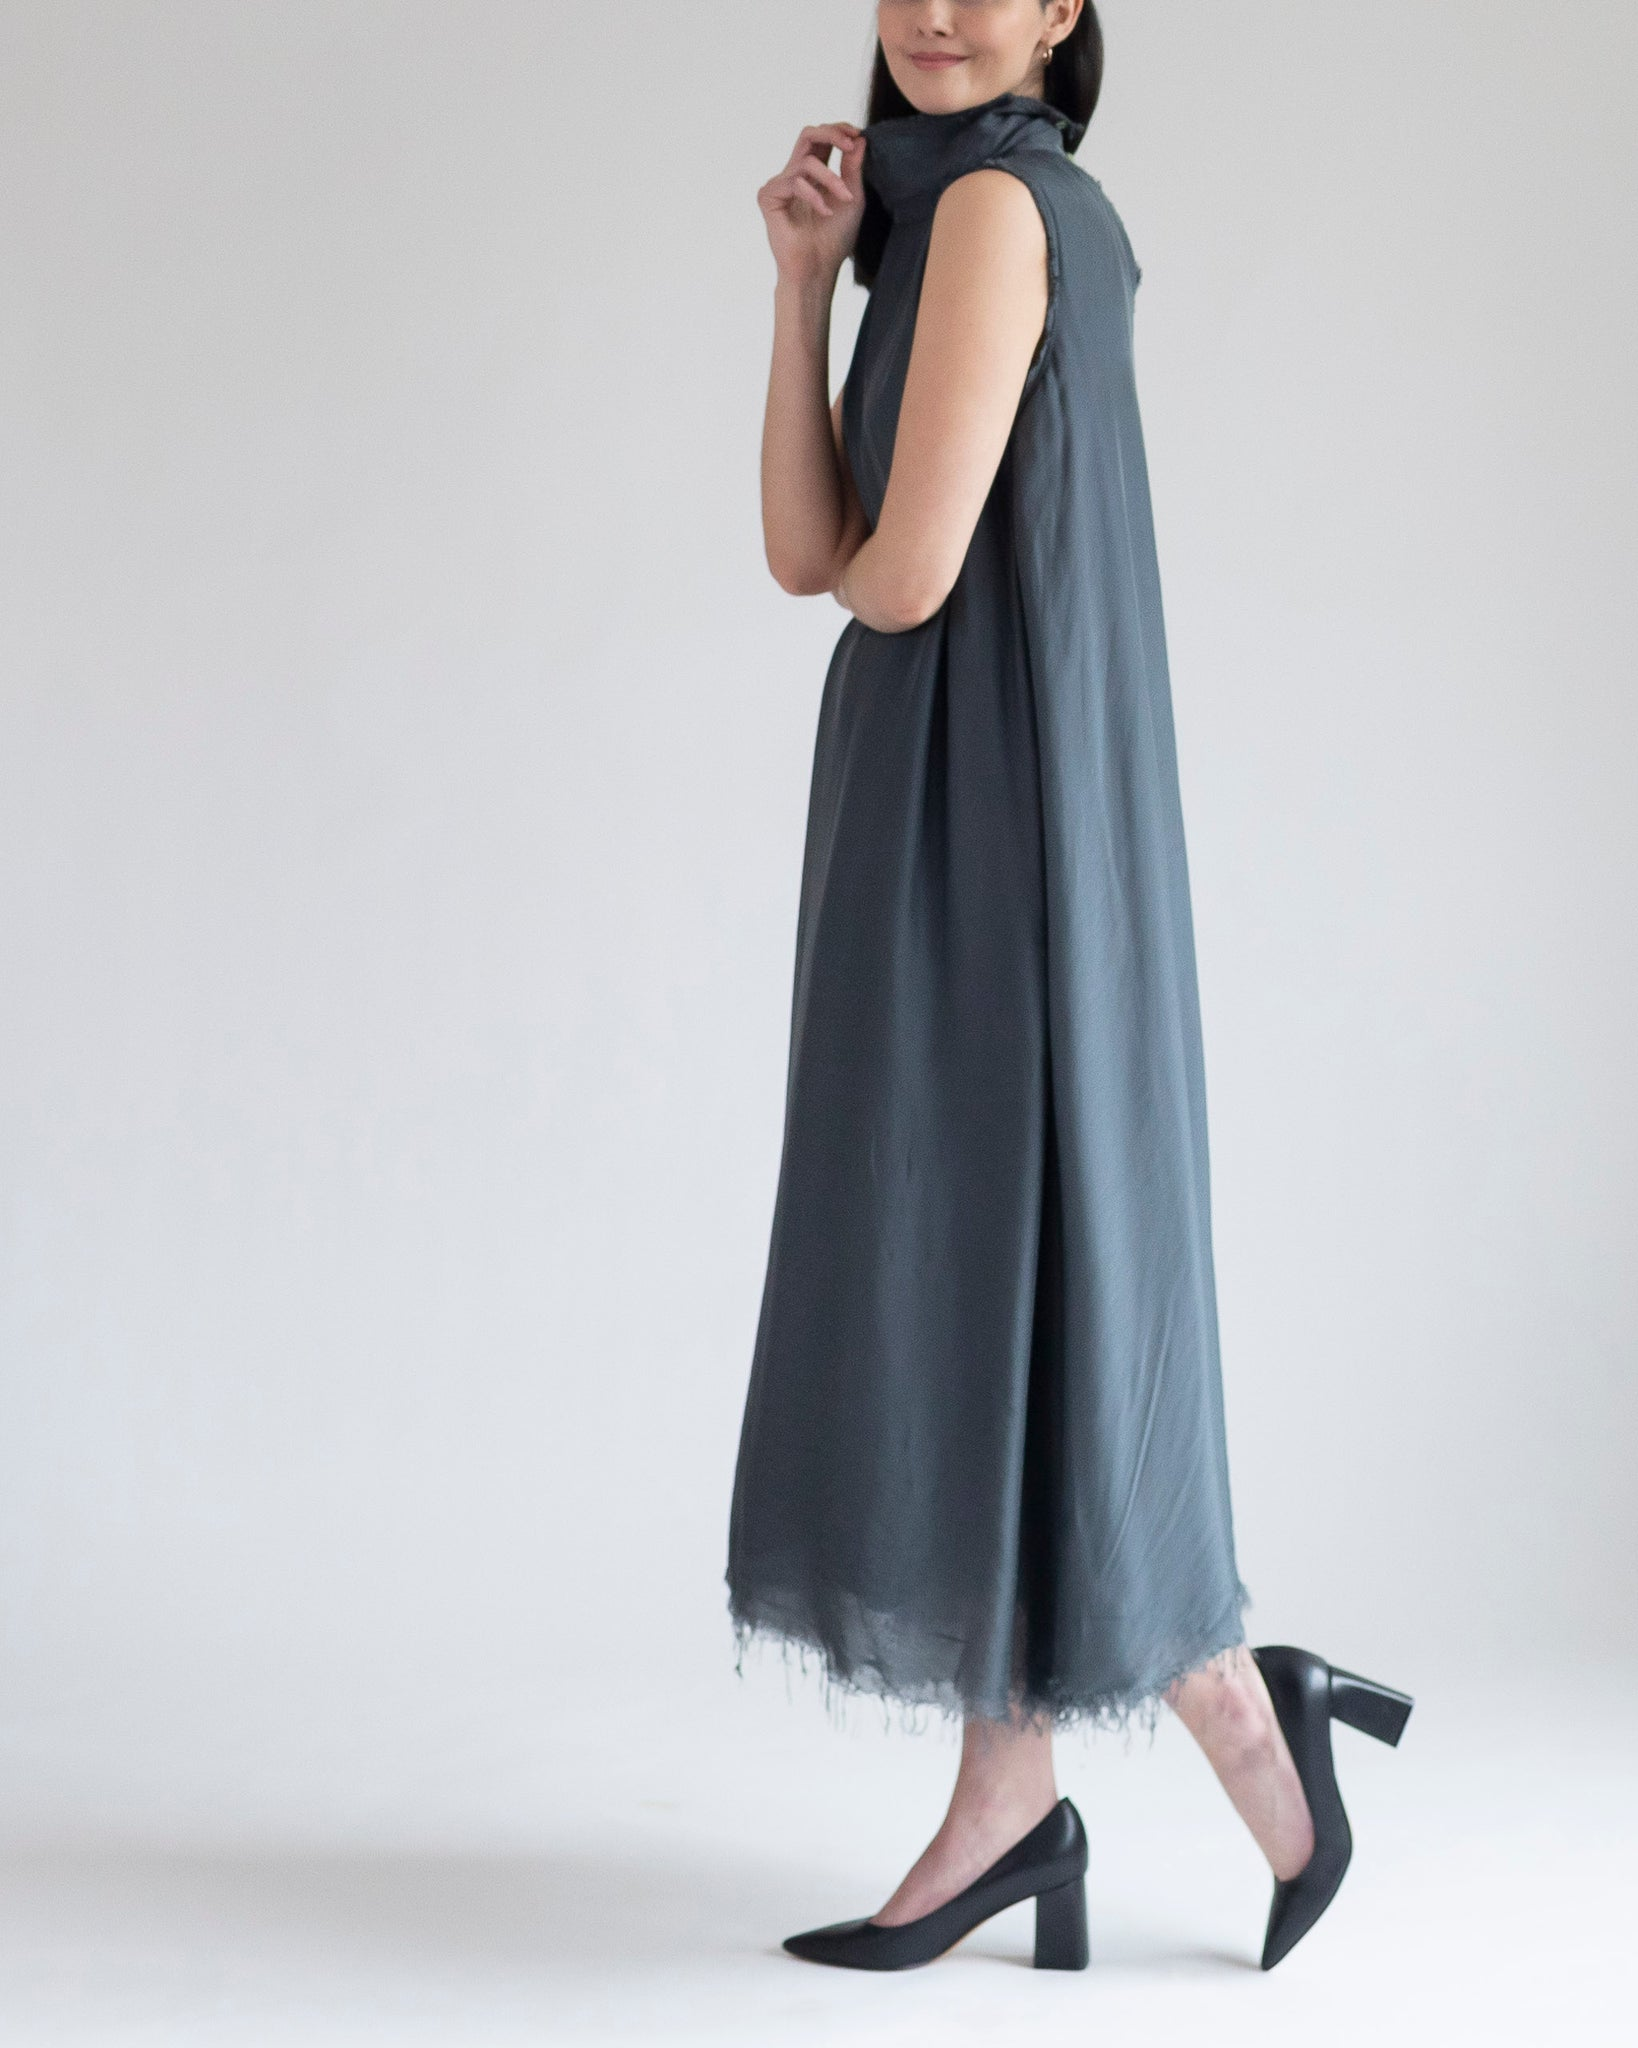 Slate Gray Silk Dress